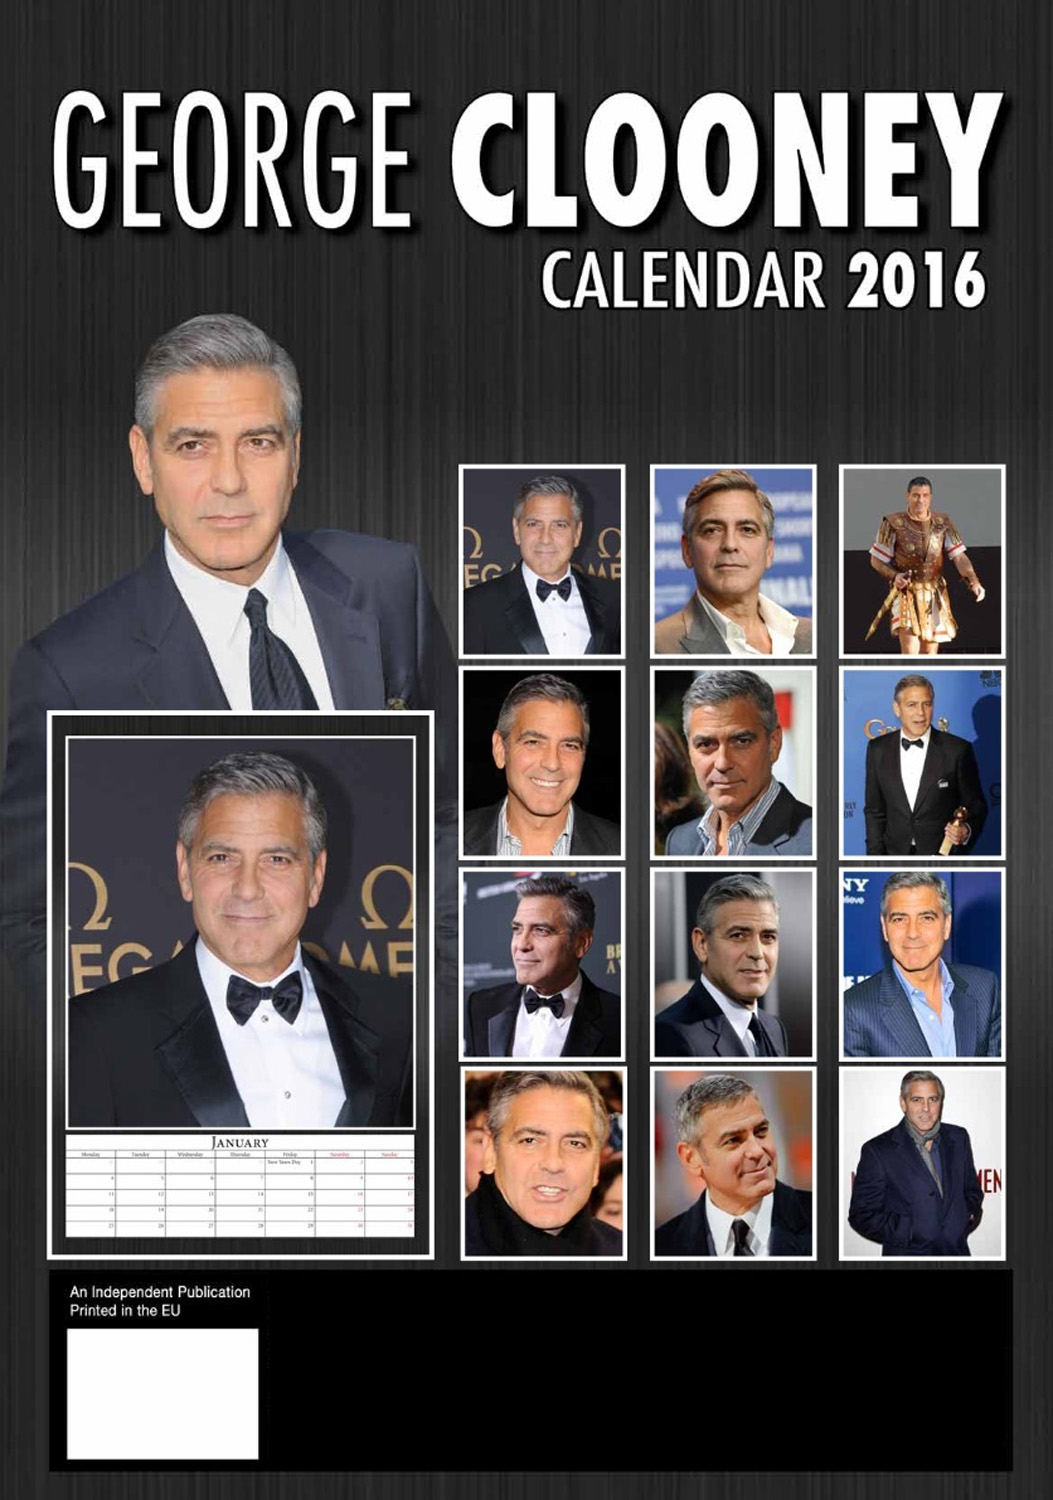 George Clooney Celebrity Wall Calendar 2016  back 9788898521494